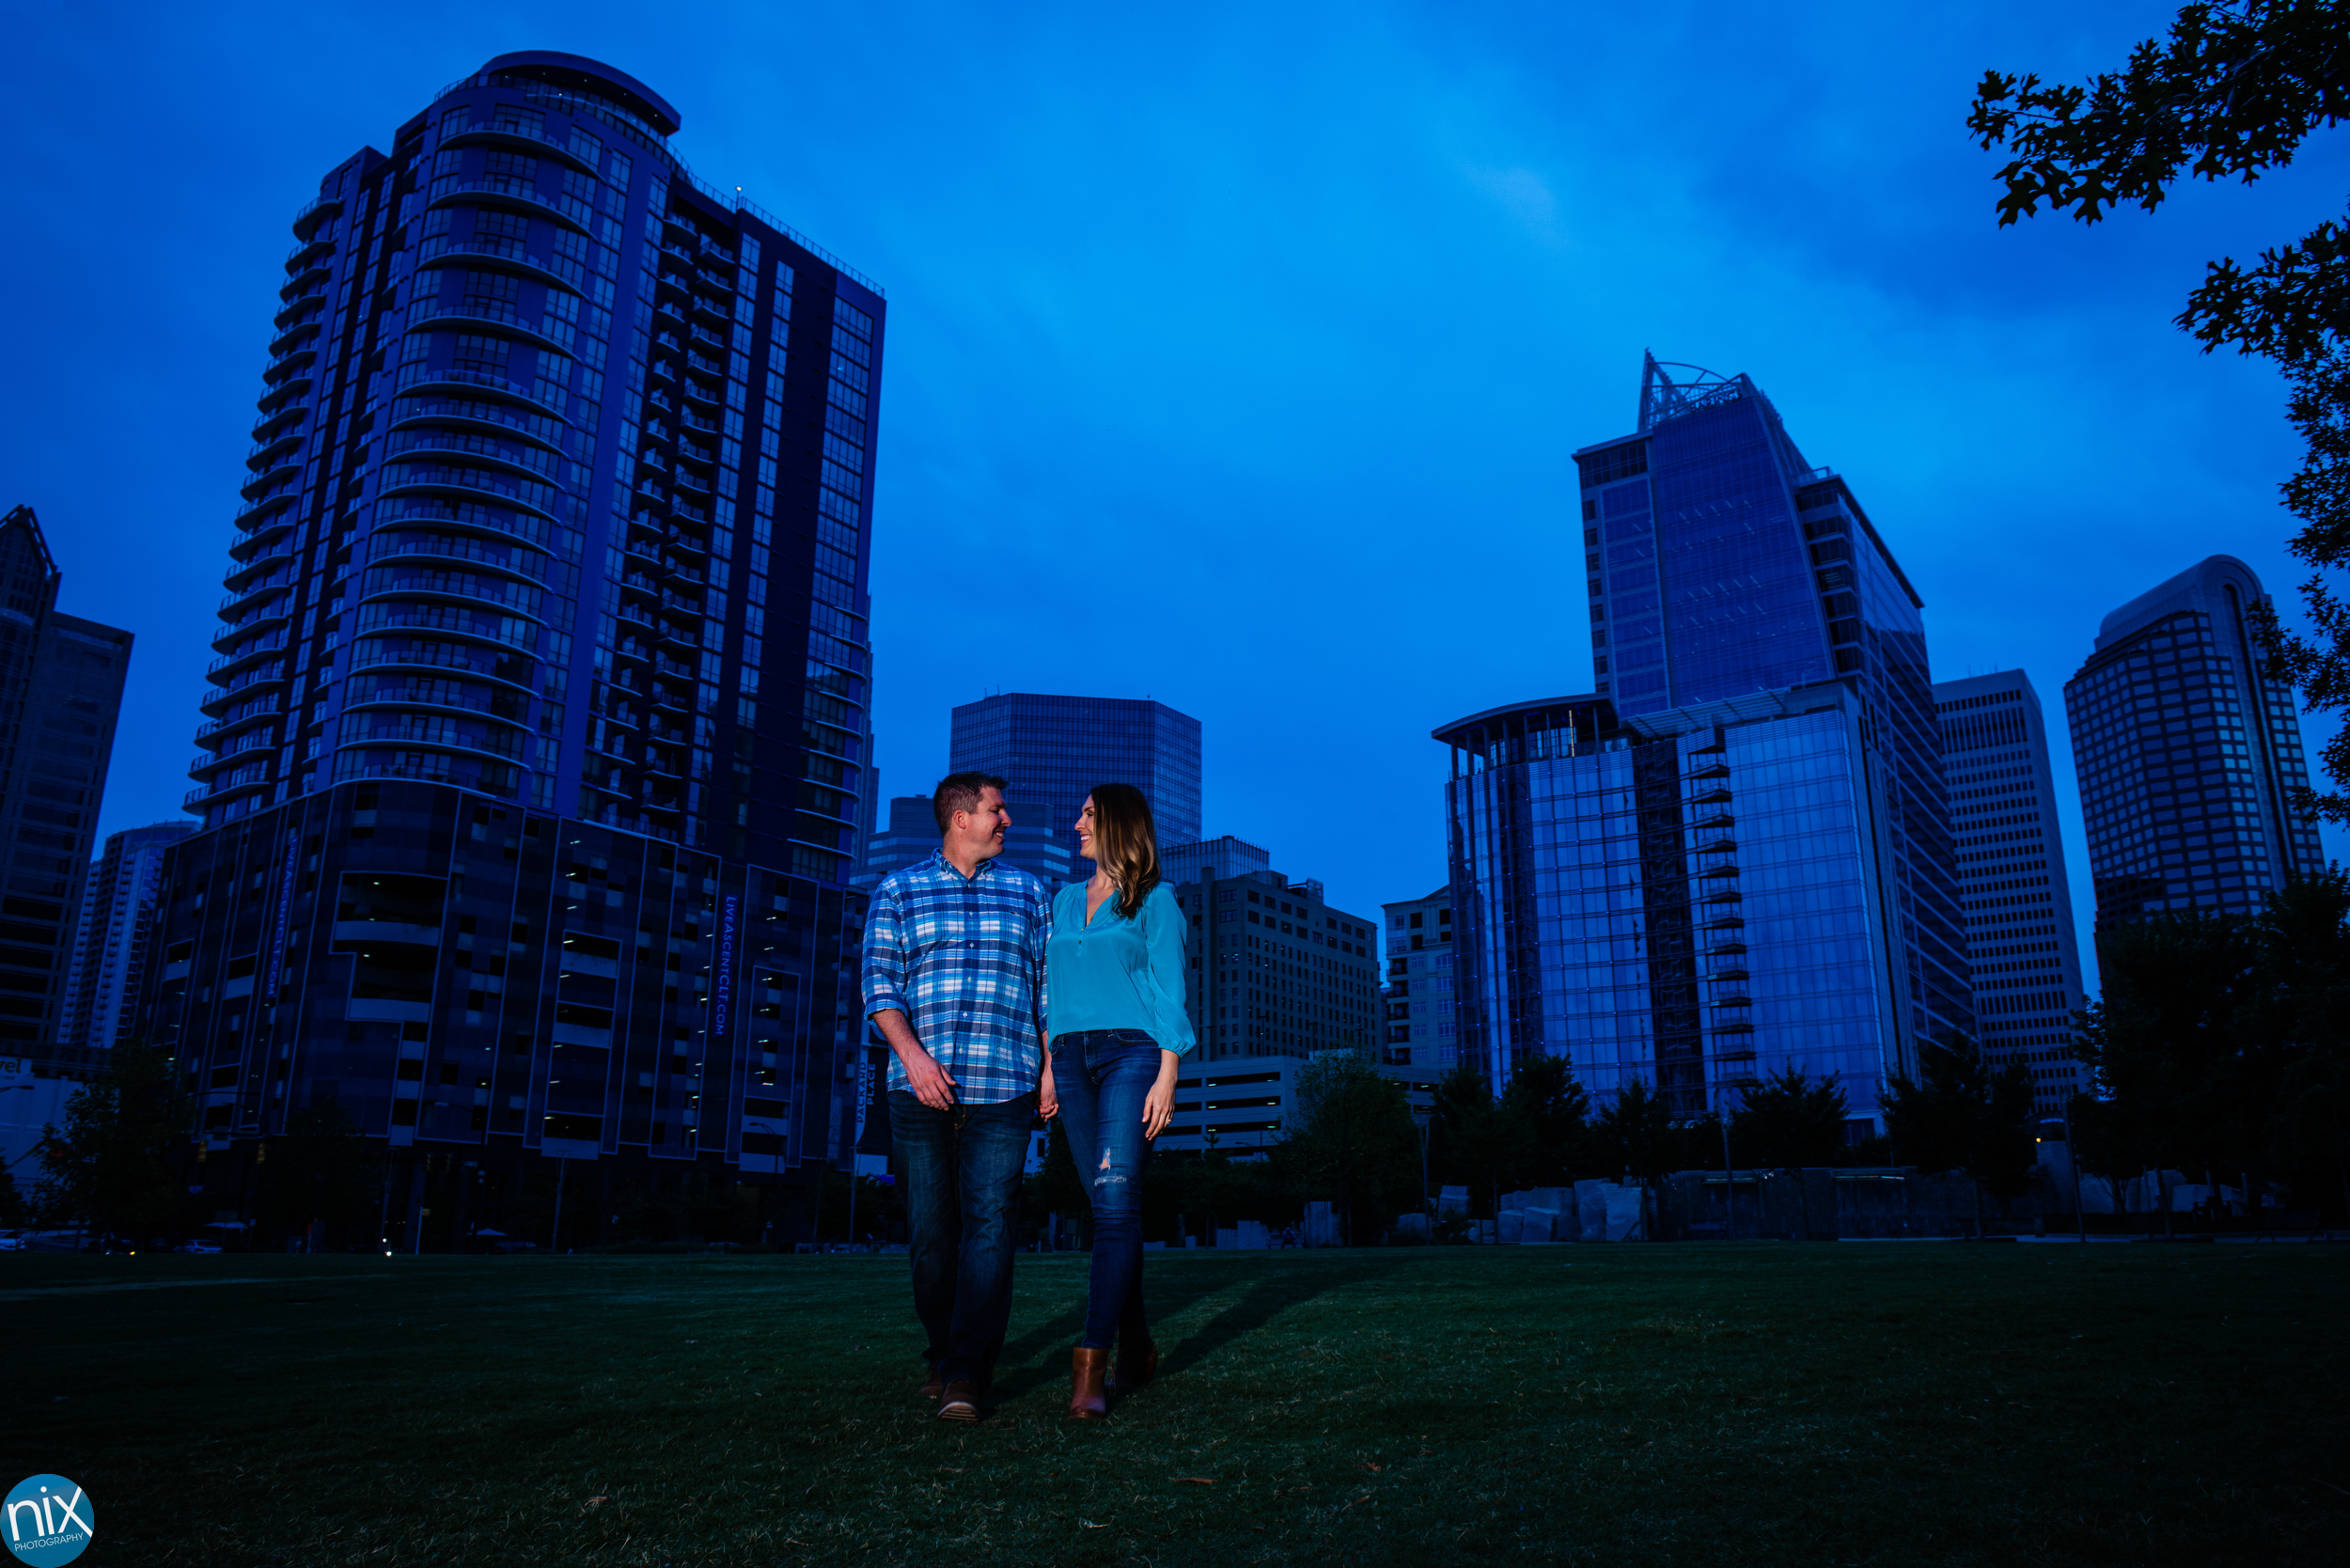 engagement photos at romare beardon park.jpg